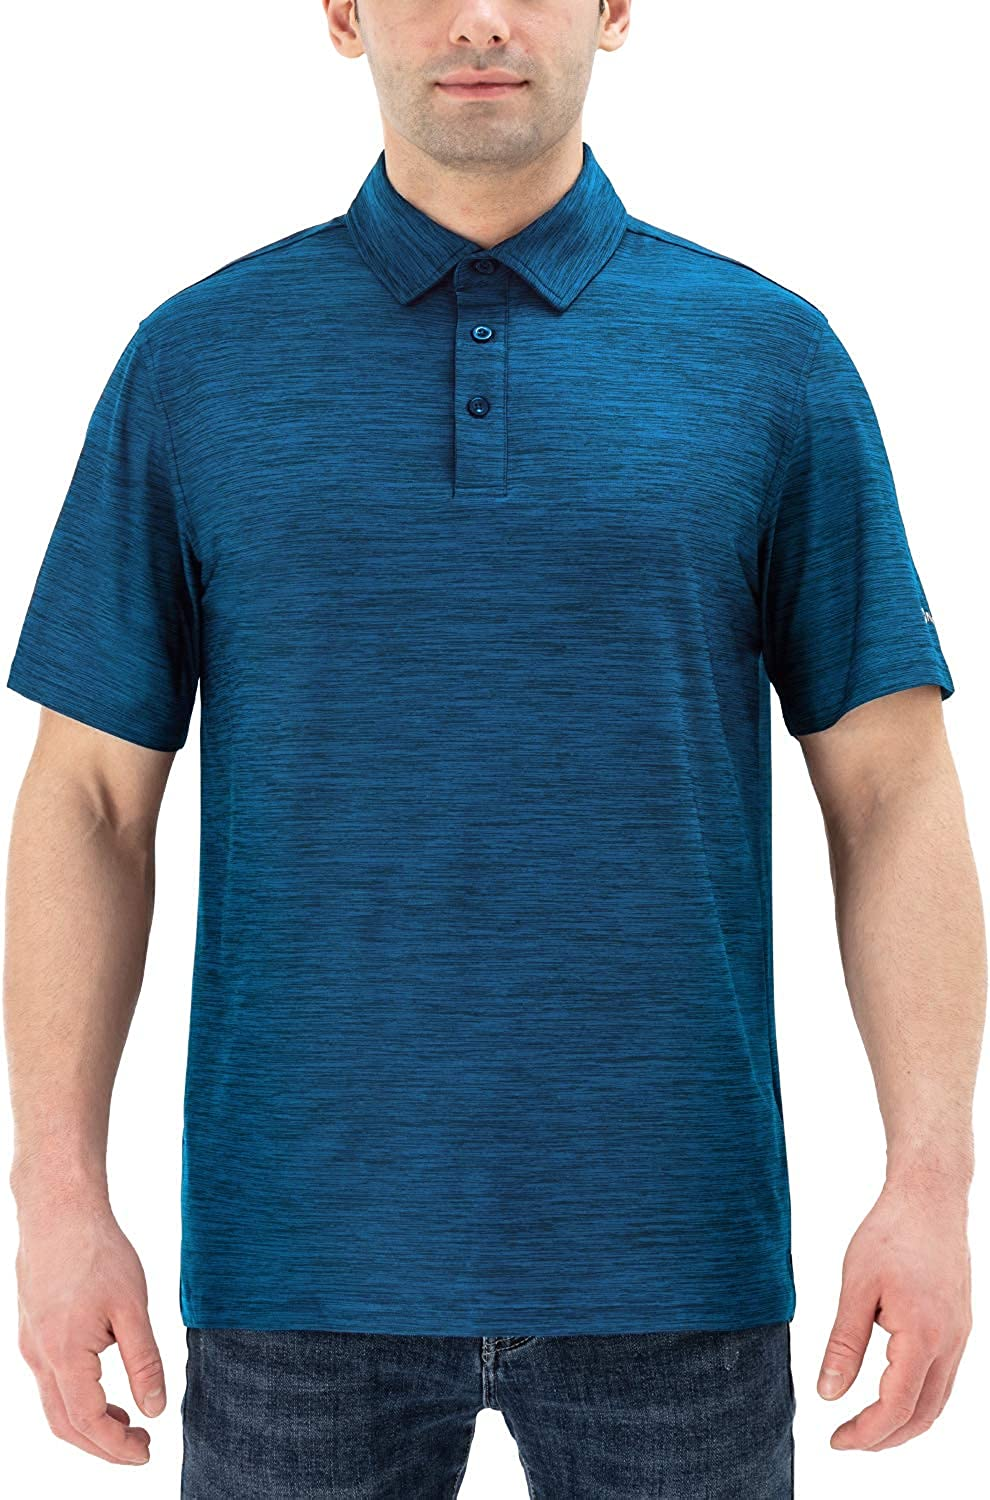 sold out NAVISKIN Max 40% OFF Men's Short Sleeve Golf Polo UPF 50+ O Shirts Dry Quick